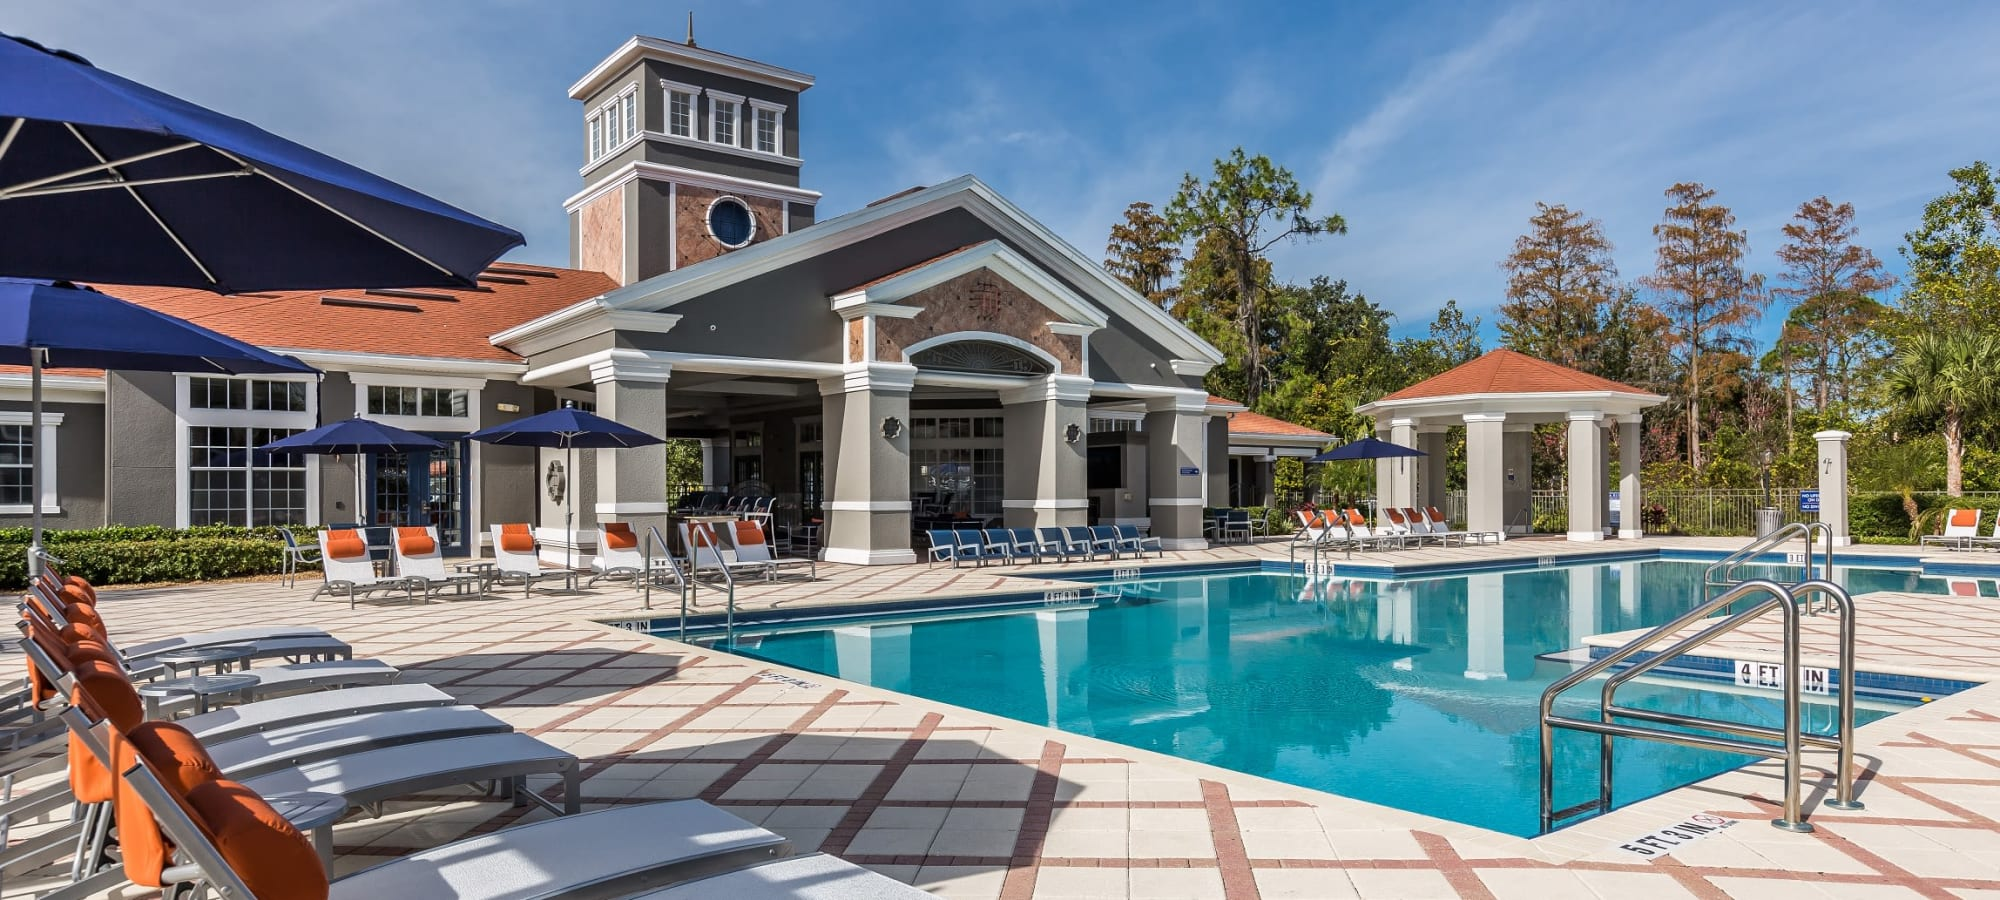 Apartments at The Aspect in Kissimmee, Florida